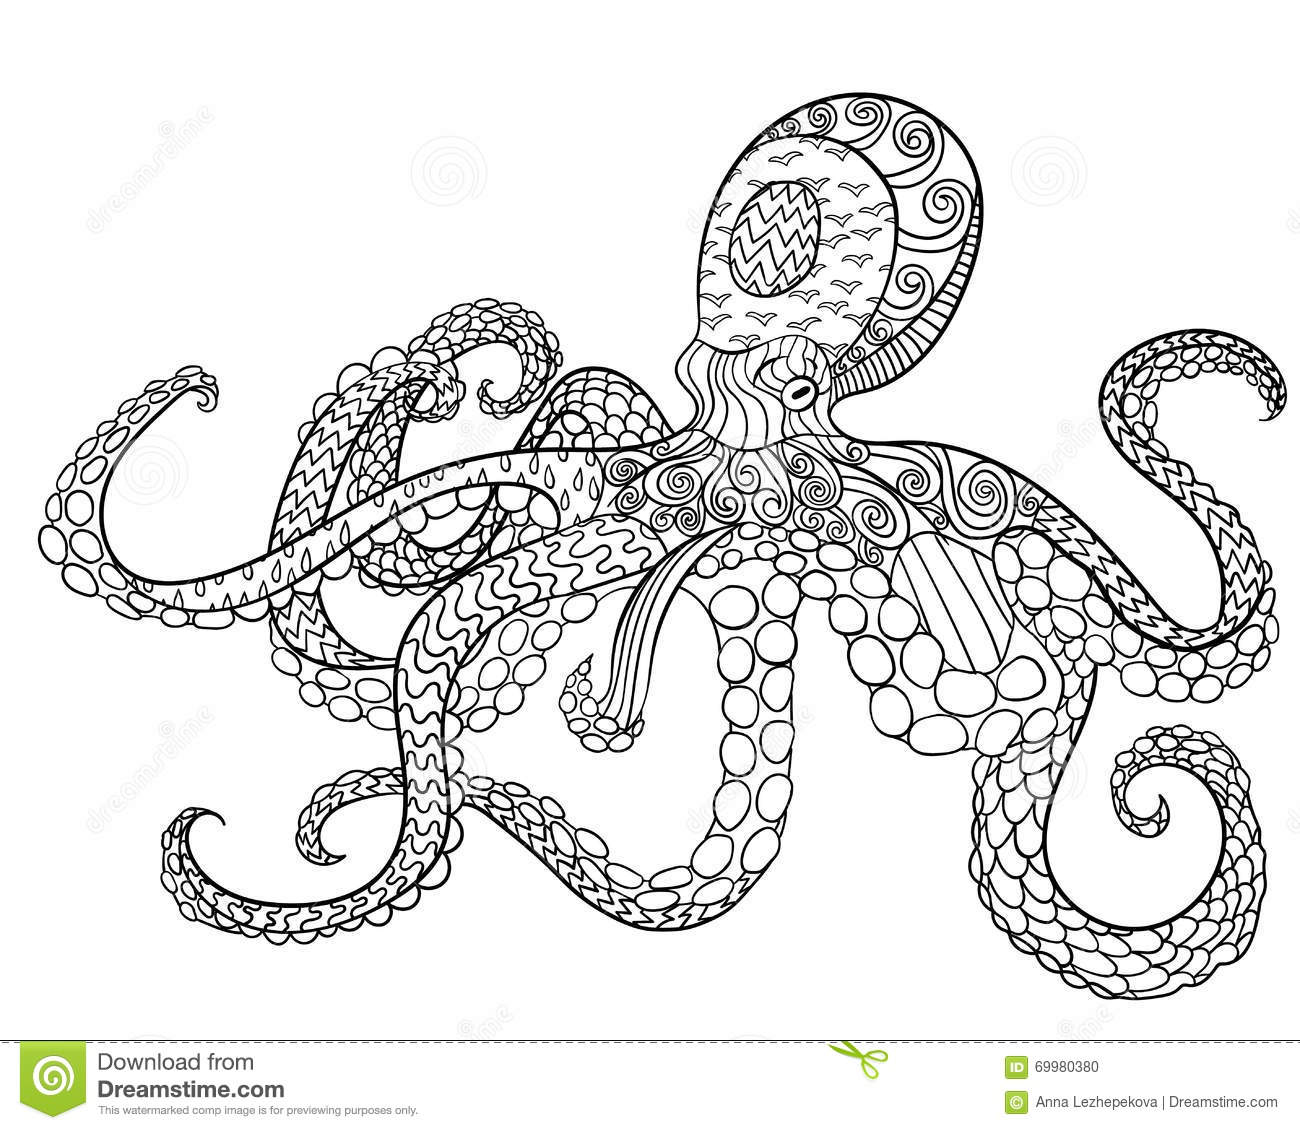 Scribble Drawing In Art Therapy : Octopus with high details stock vector illustration of